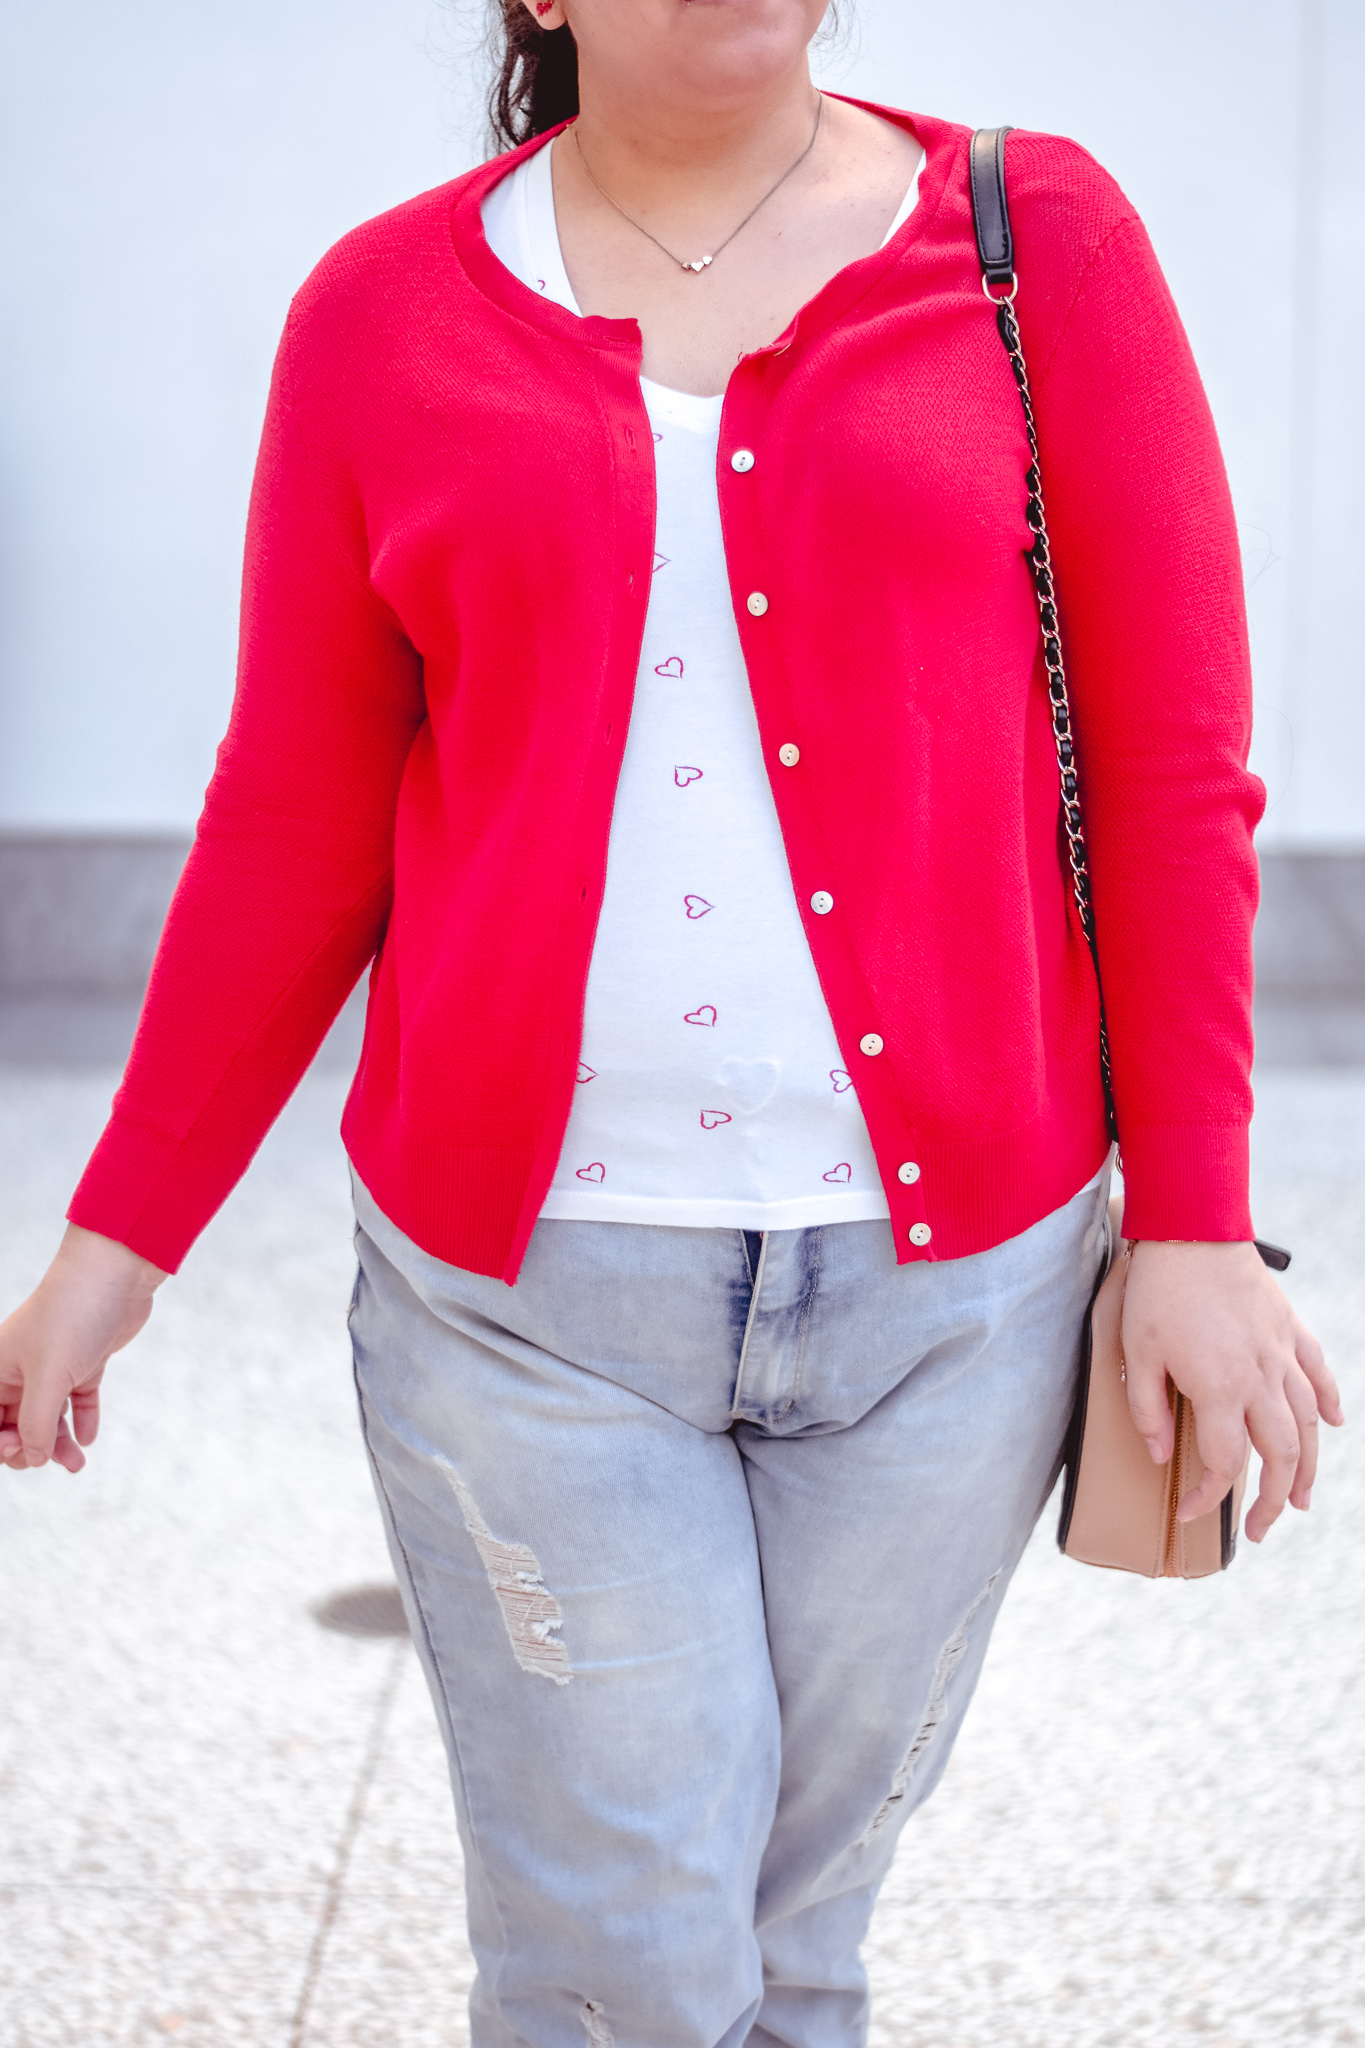 Easy To Recreate Valentine's Day Outfit